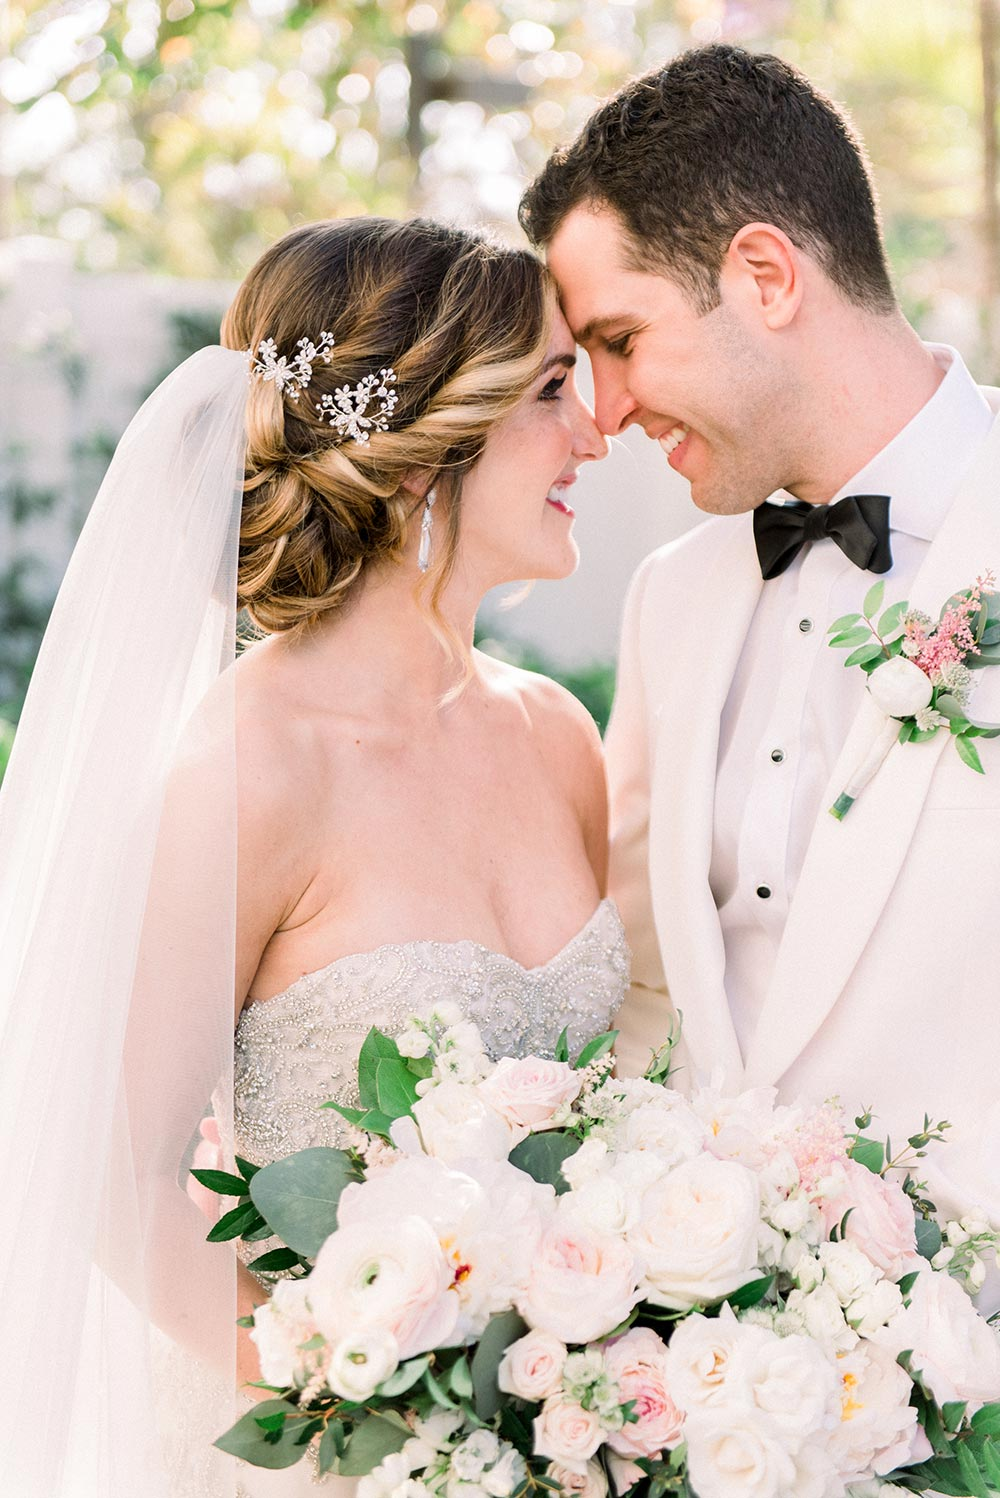 strapless embellished wedding dress and white groom tux